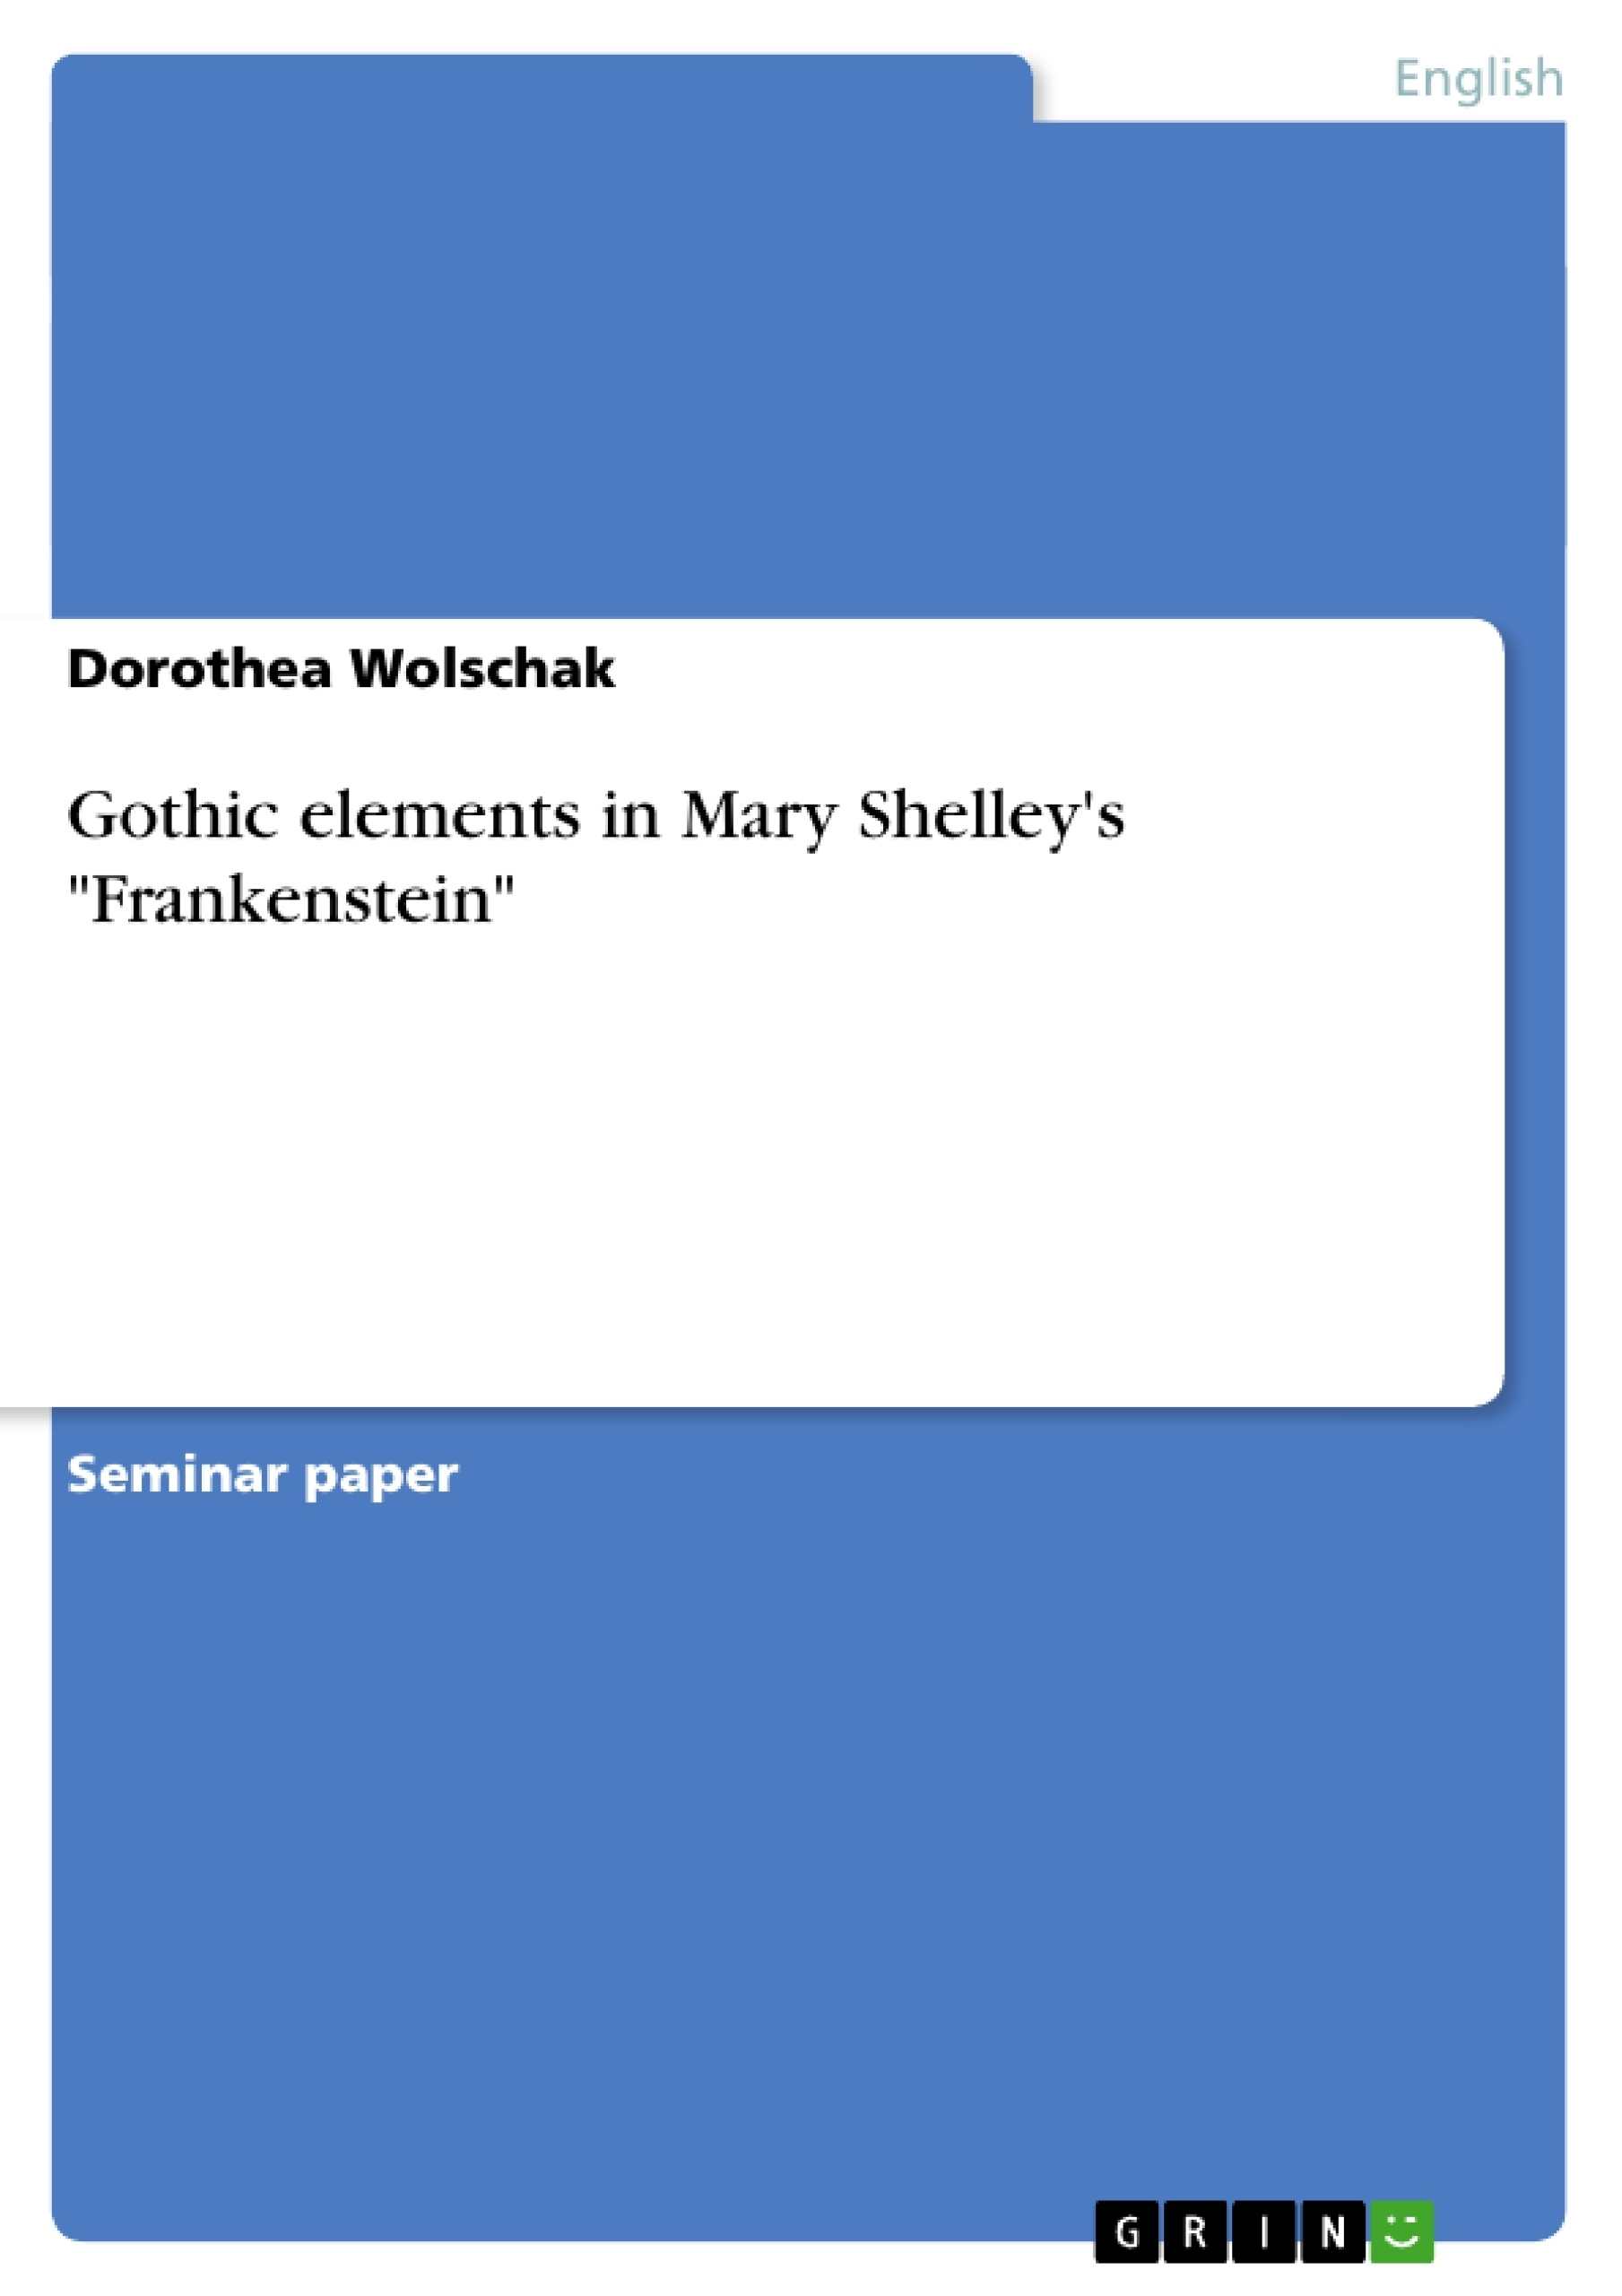 gothic elements in mary shelley s frankenstein publish your gothic elements in mary shelley s frankenstein publish your master s thesis bachelor s thesis essay or term paper